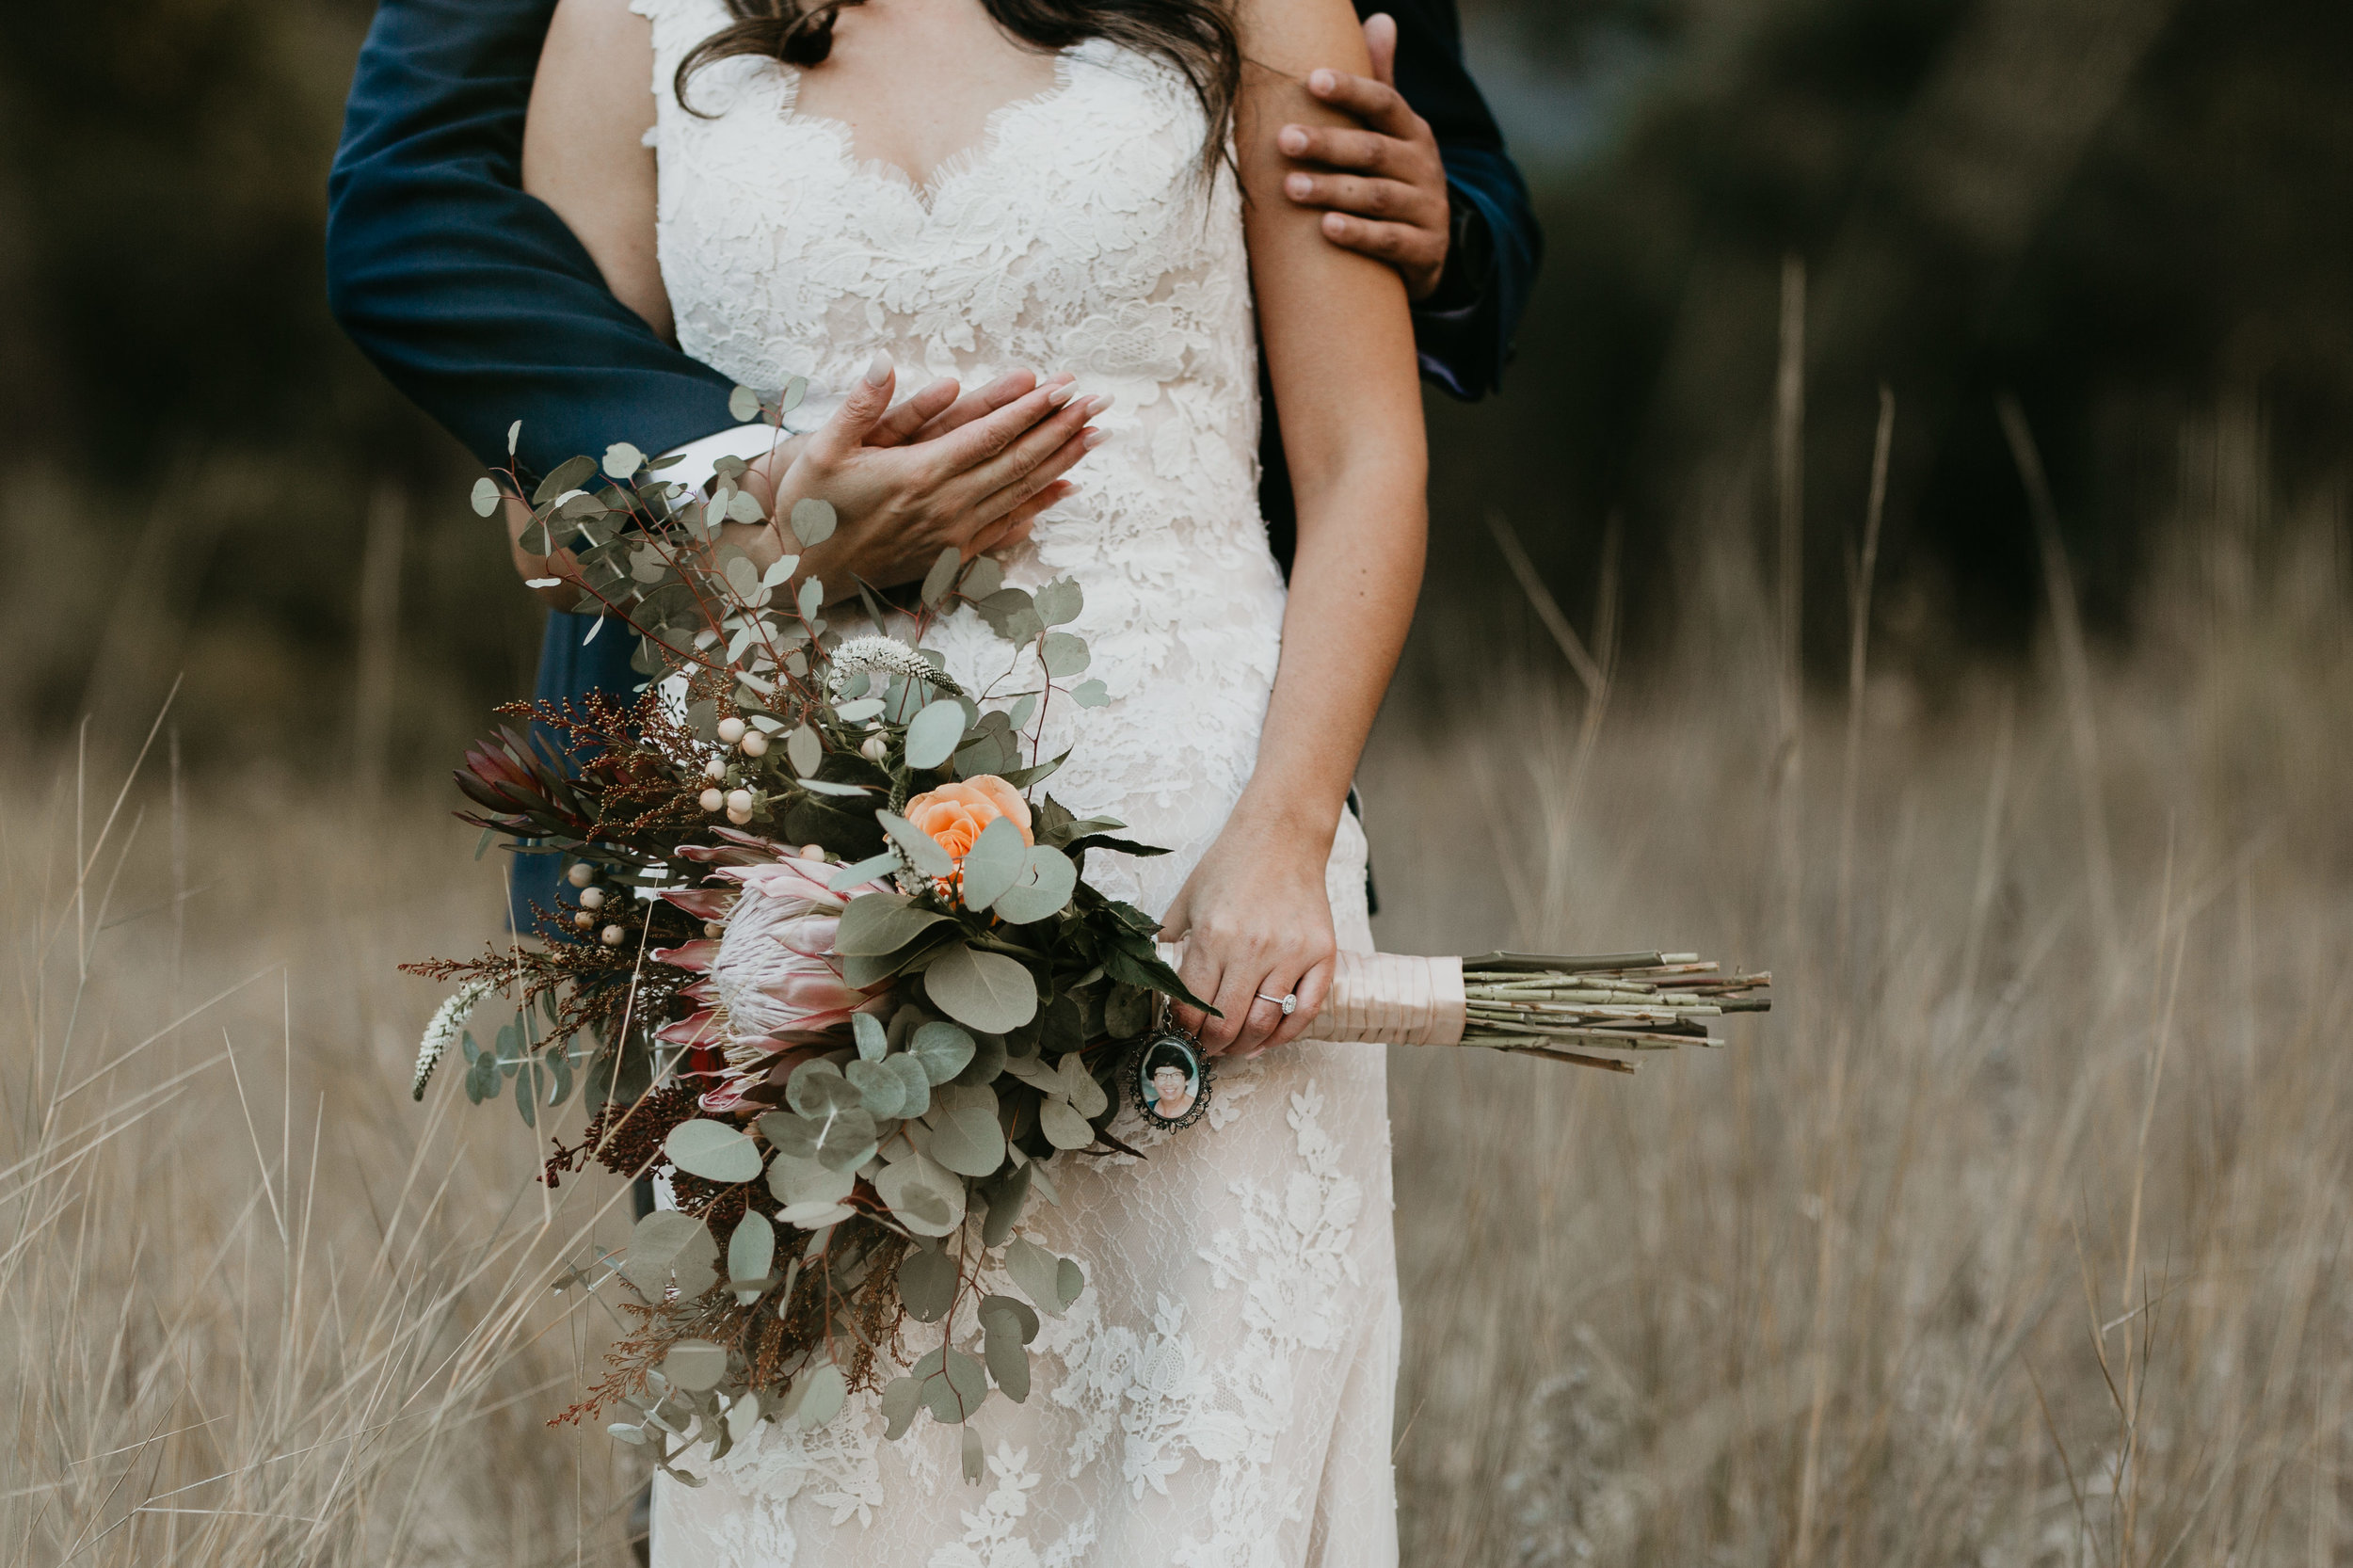 nicole-daacke-photography-intimate-elopement-wedding-yosemite-national-park-california-taft-point-sunset-photos-yosemite-valley-tunnel-view-first-look-sunrise-golden-granite-hiking-adventure-wedding-adventurous-elopement-photographer-13.jpg